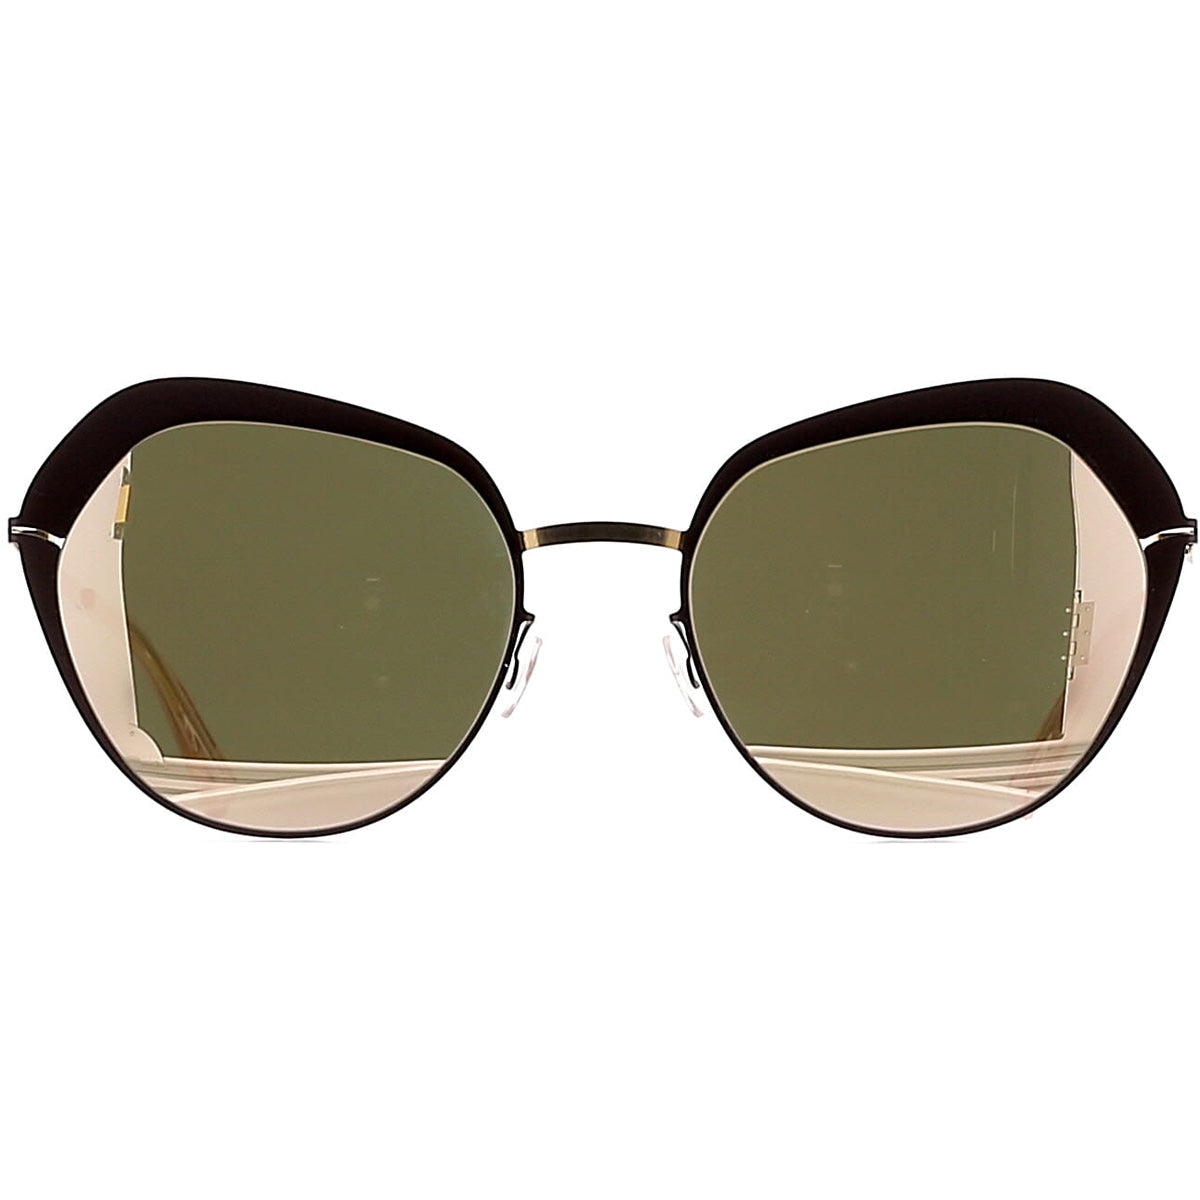 Mykita Mette 285 Champagne Gold / Dark Brown